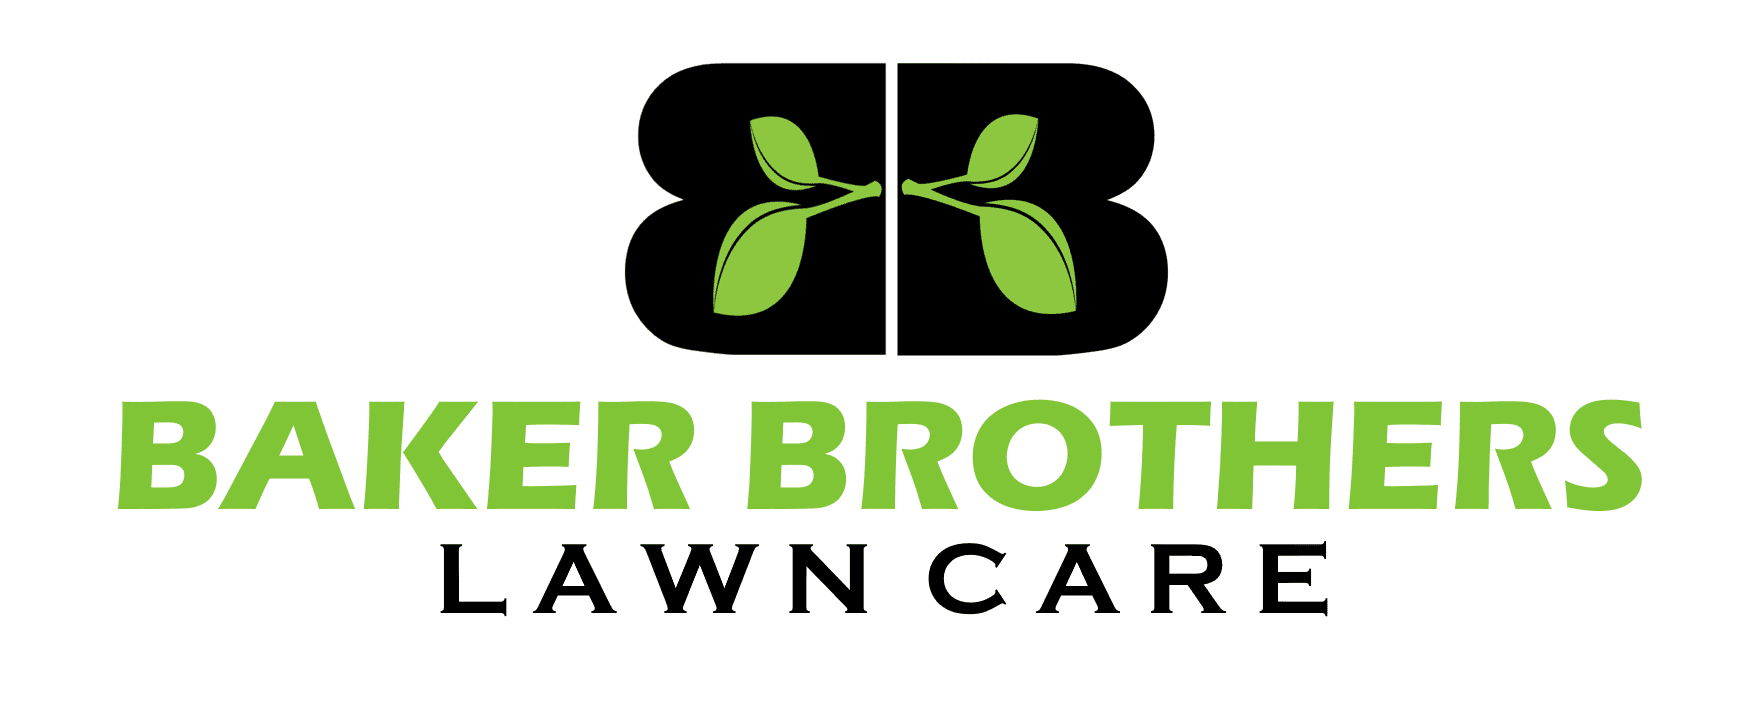 Baker Brothers Lawn Care